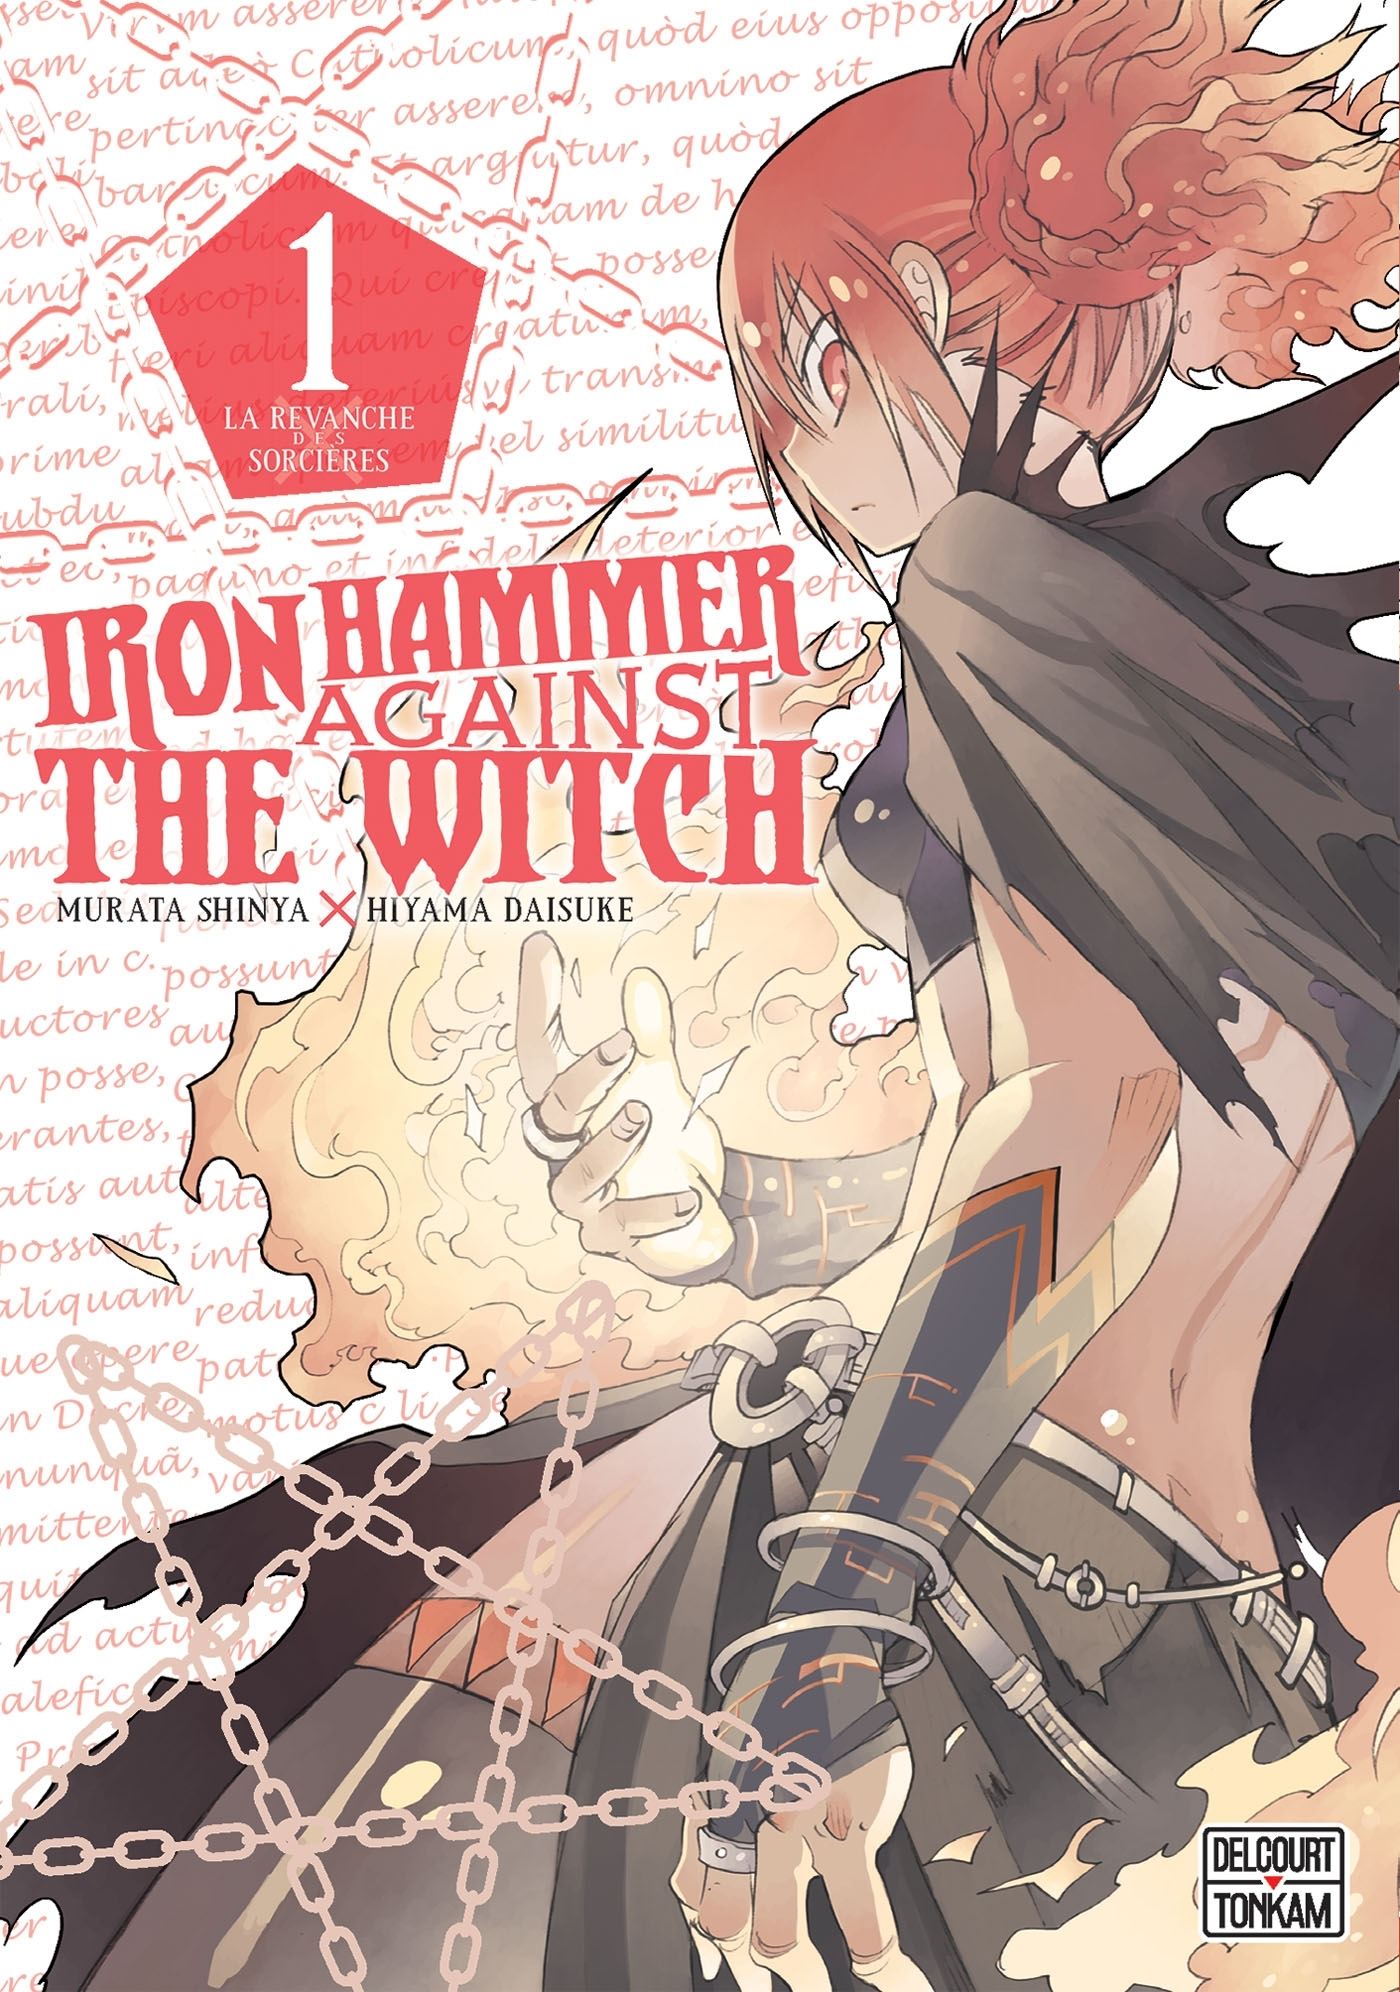 IRON HAMMER AGAINST THE WITCH 01 - T1